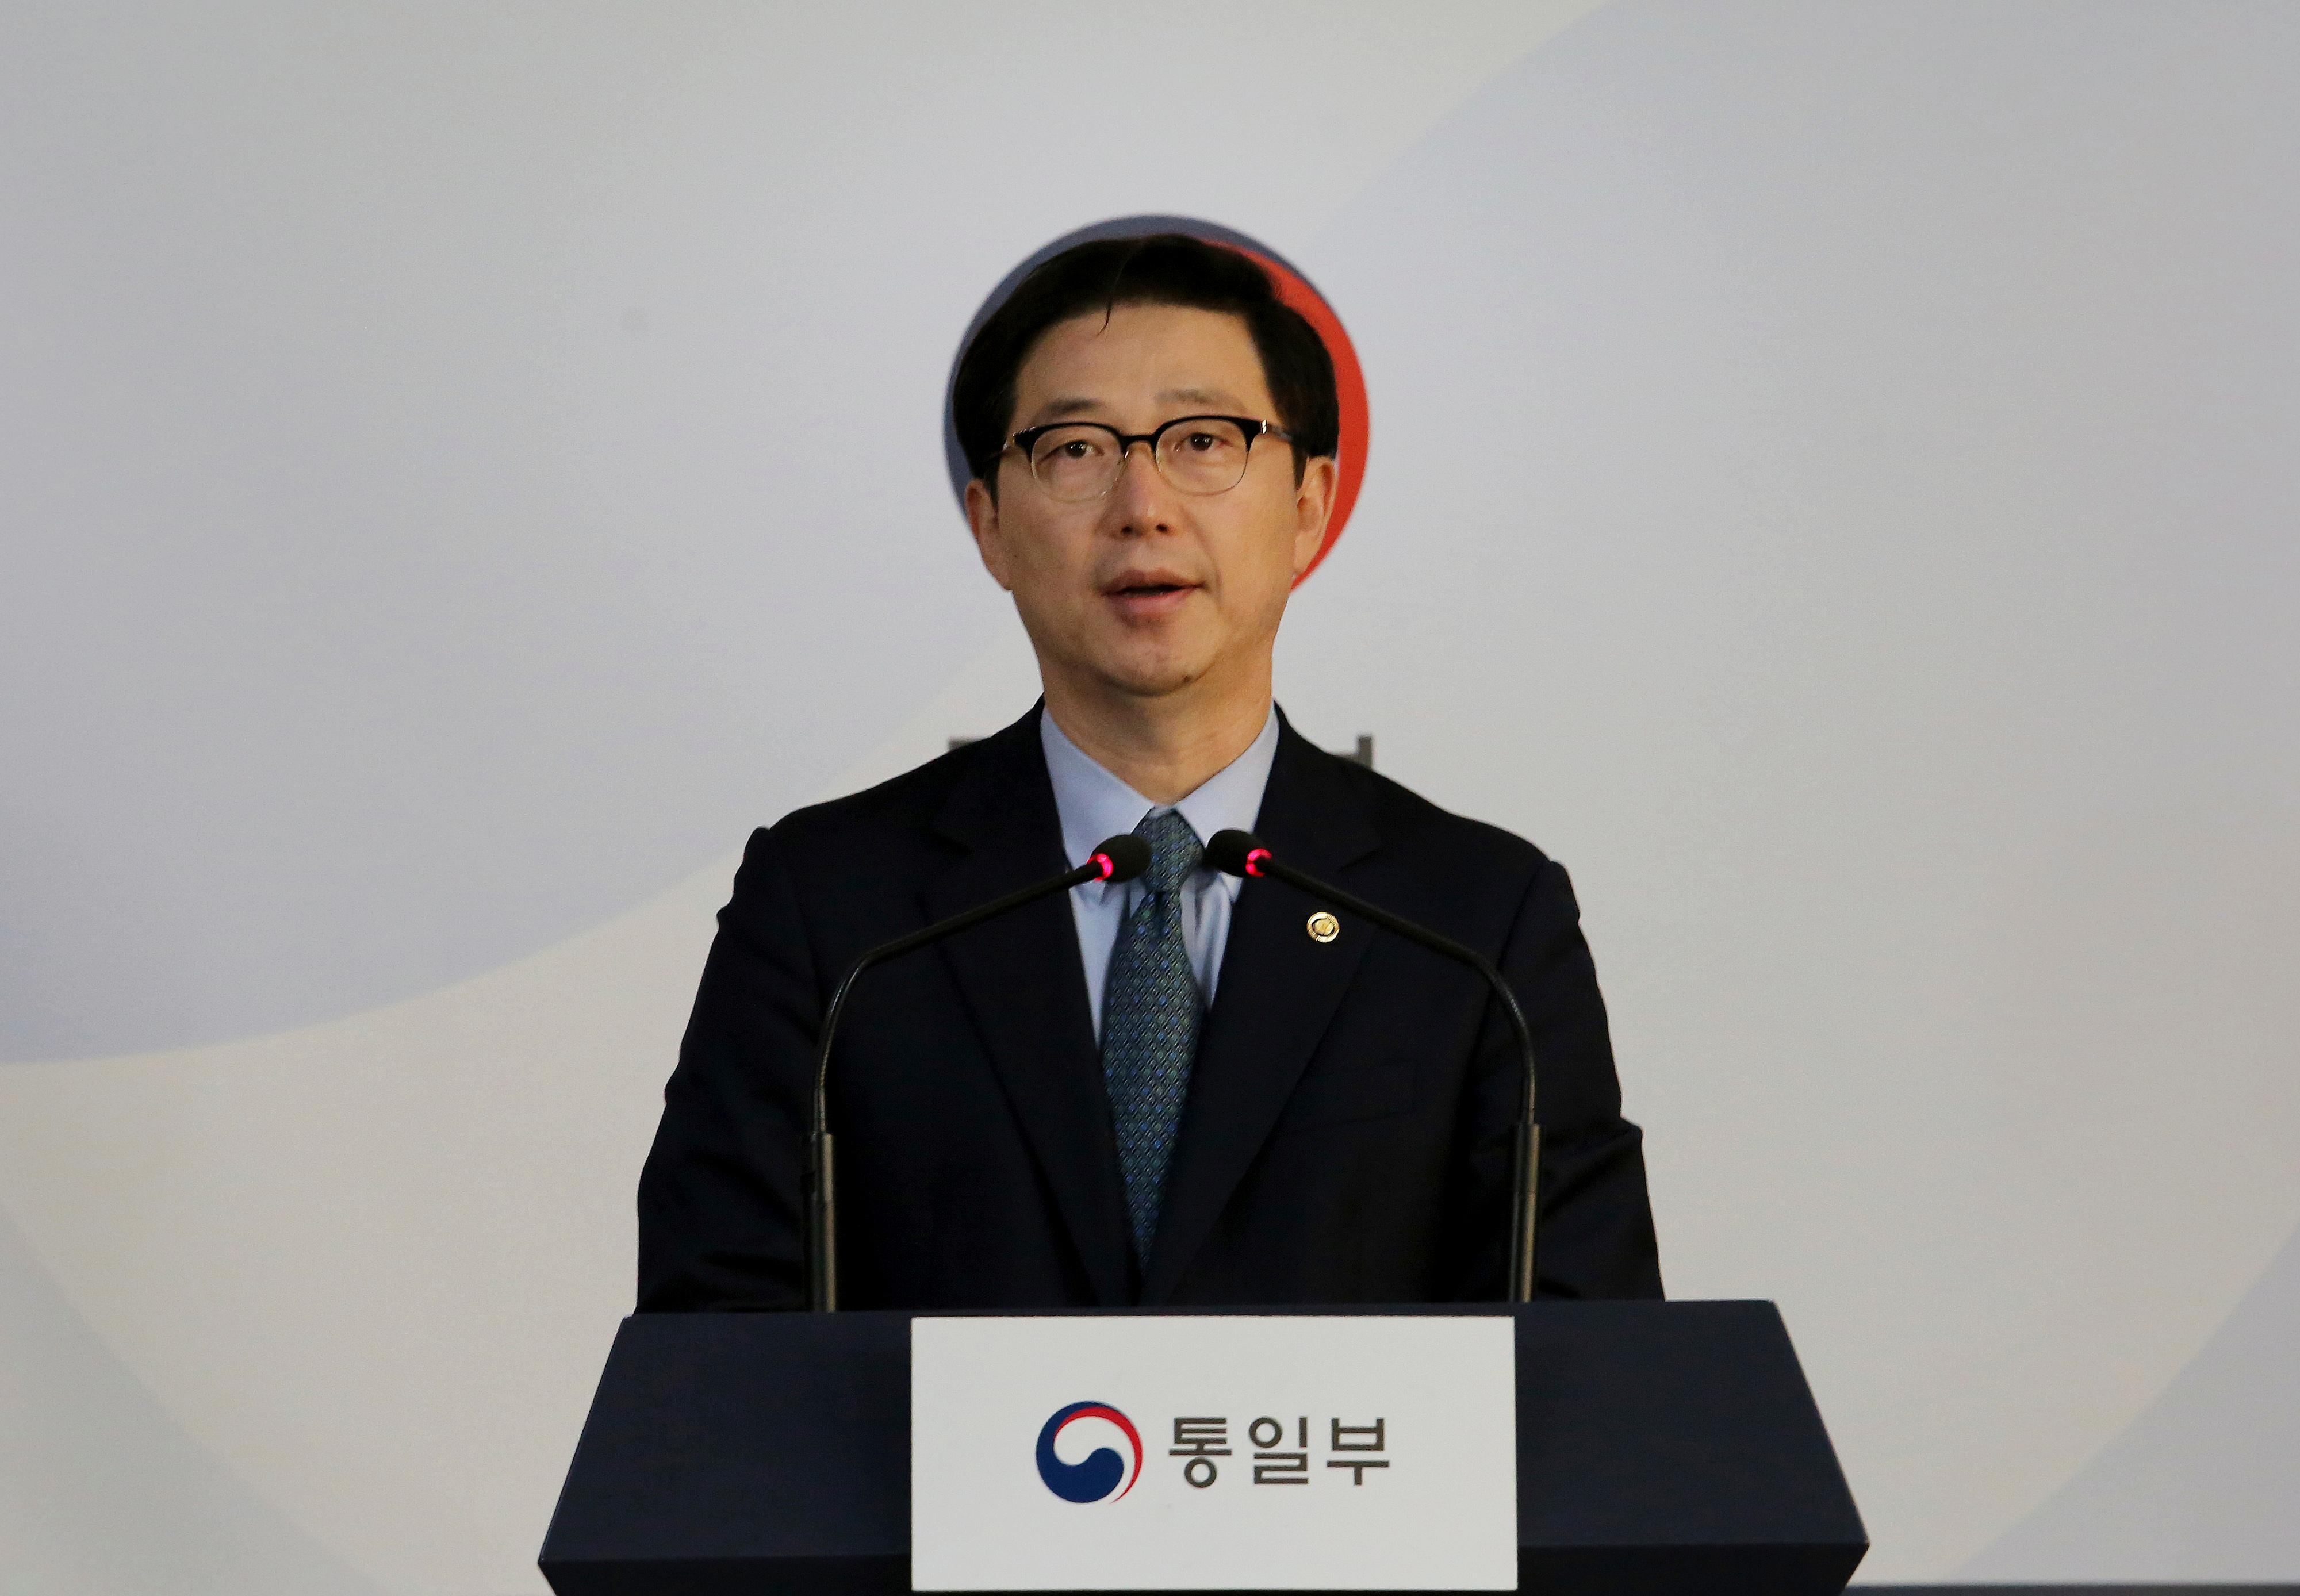 South Korean Vice Unification Minister Chun Hae-sung speaks during a press conference at the Unification Ministry in Seoul, South Korea, Friday, March 22, 2019. (AP Photo/Ahn Young-joon)